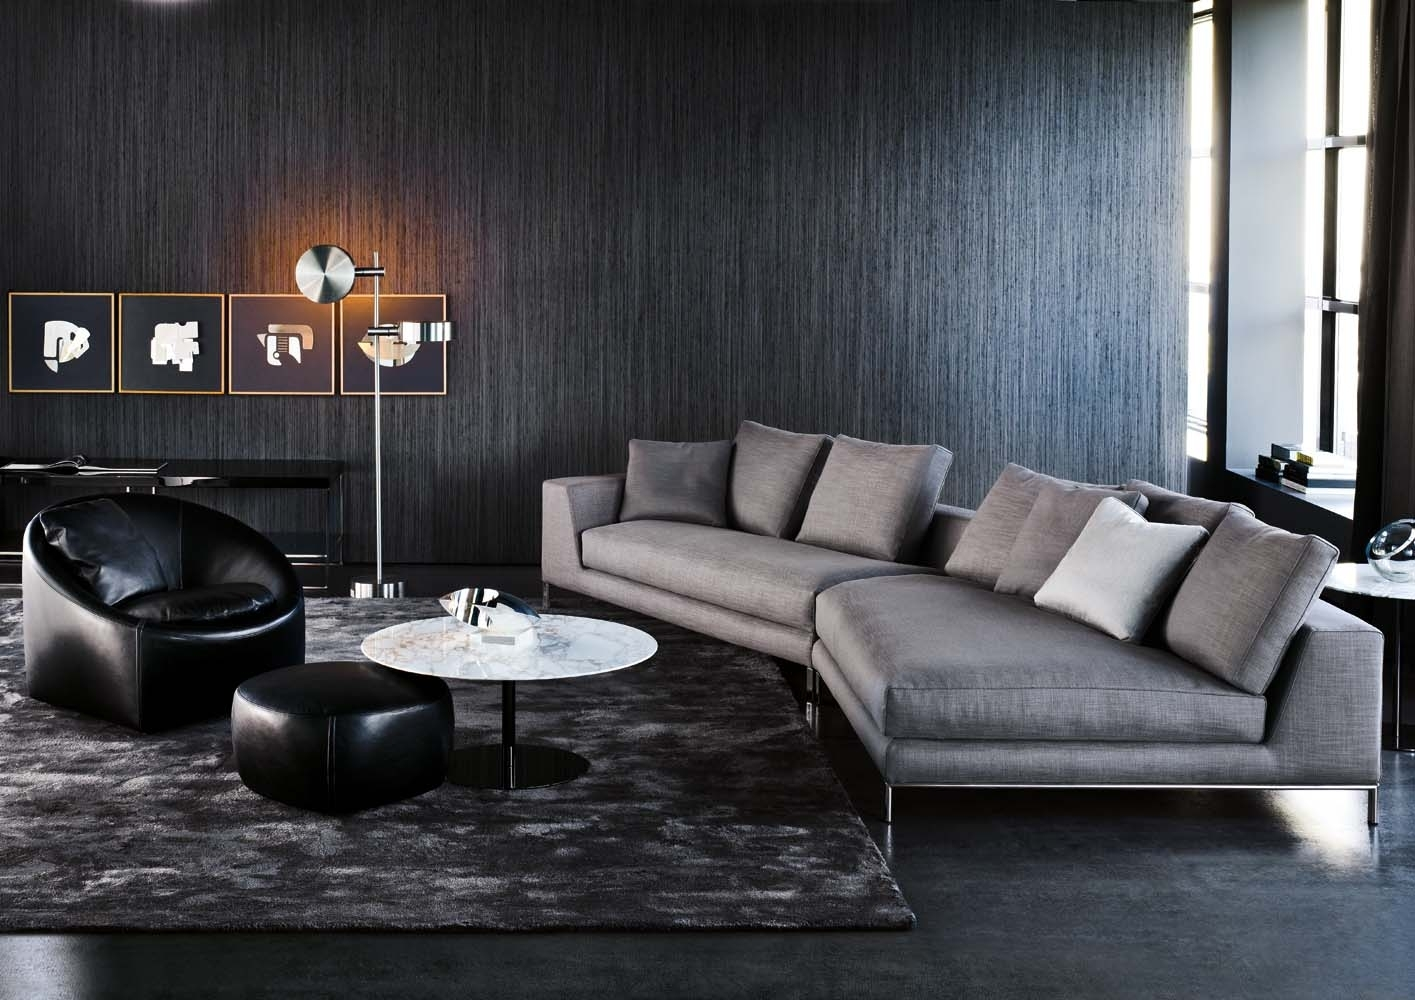 Minotti Hamilton Sofa - Google Search | Chc | Pinterest | Living pertaining to Hamilton Sectional Sofas (Image 7 of 10)